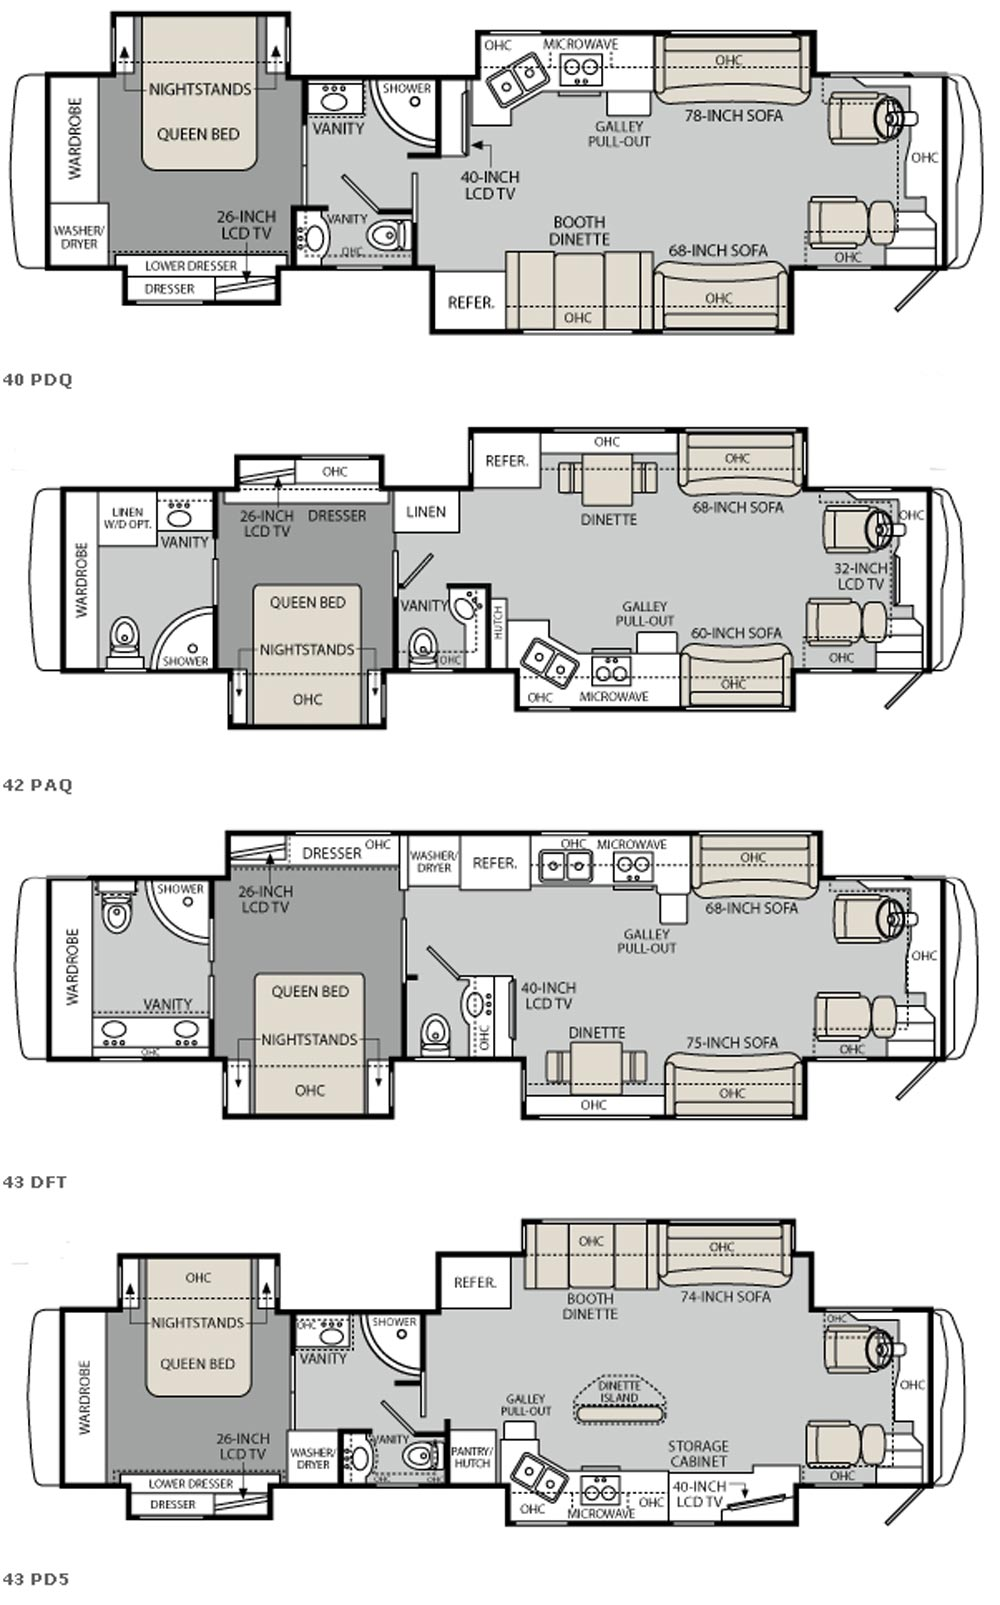 2011 monaco diplomat floorplans for Rv blueprints